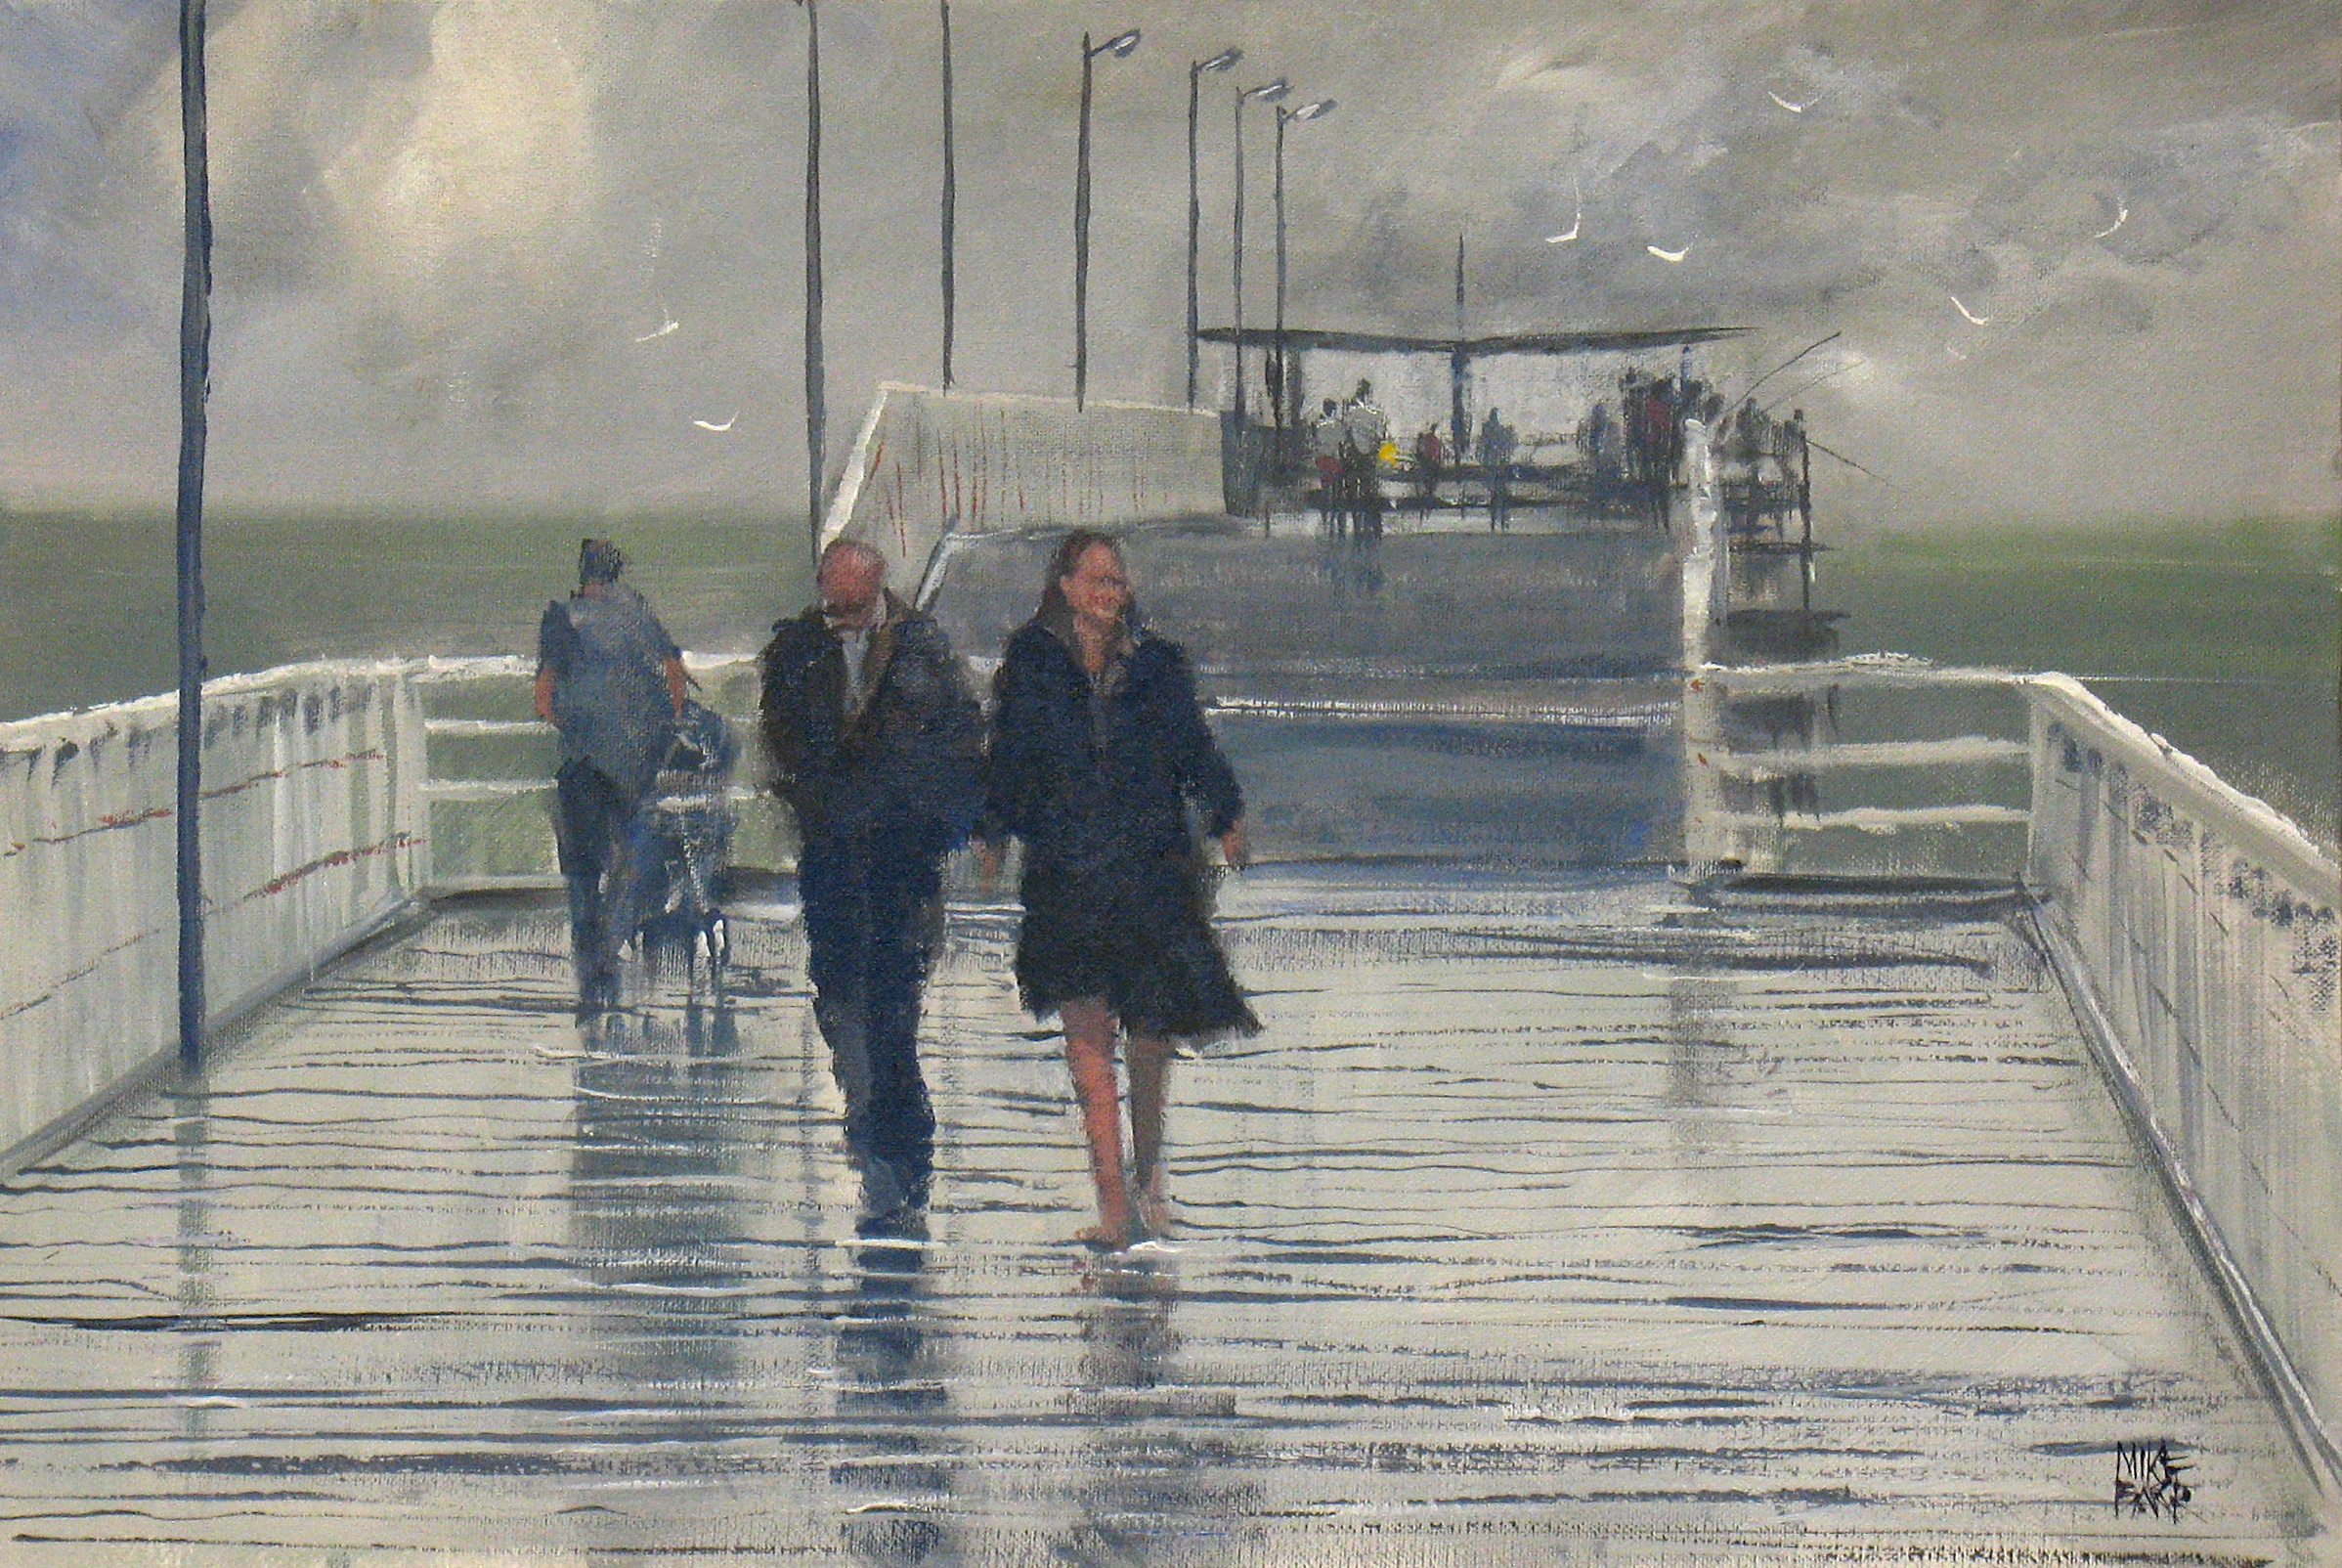 Caption: After the rain - Largs Jetty - acrylic on canvas board. Can you sense that after-rain feeling?